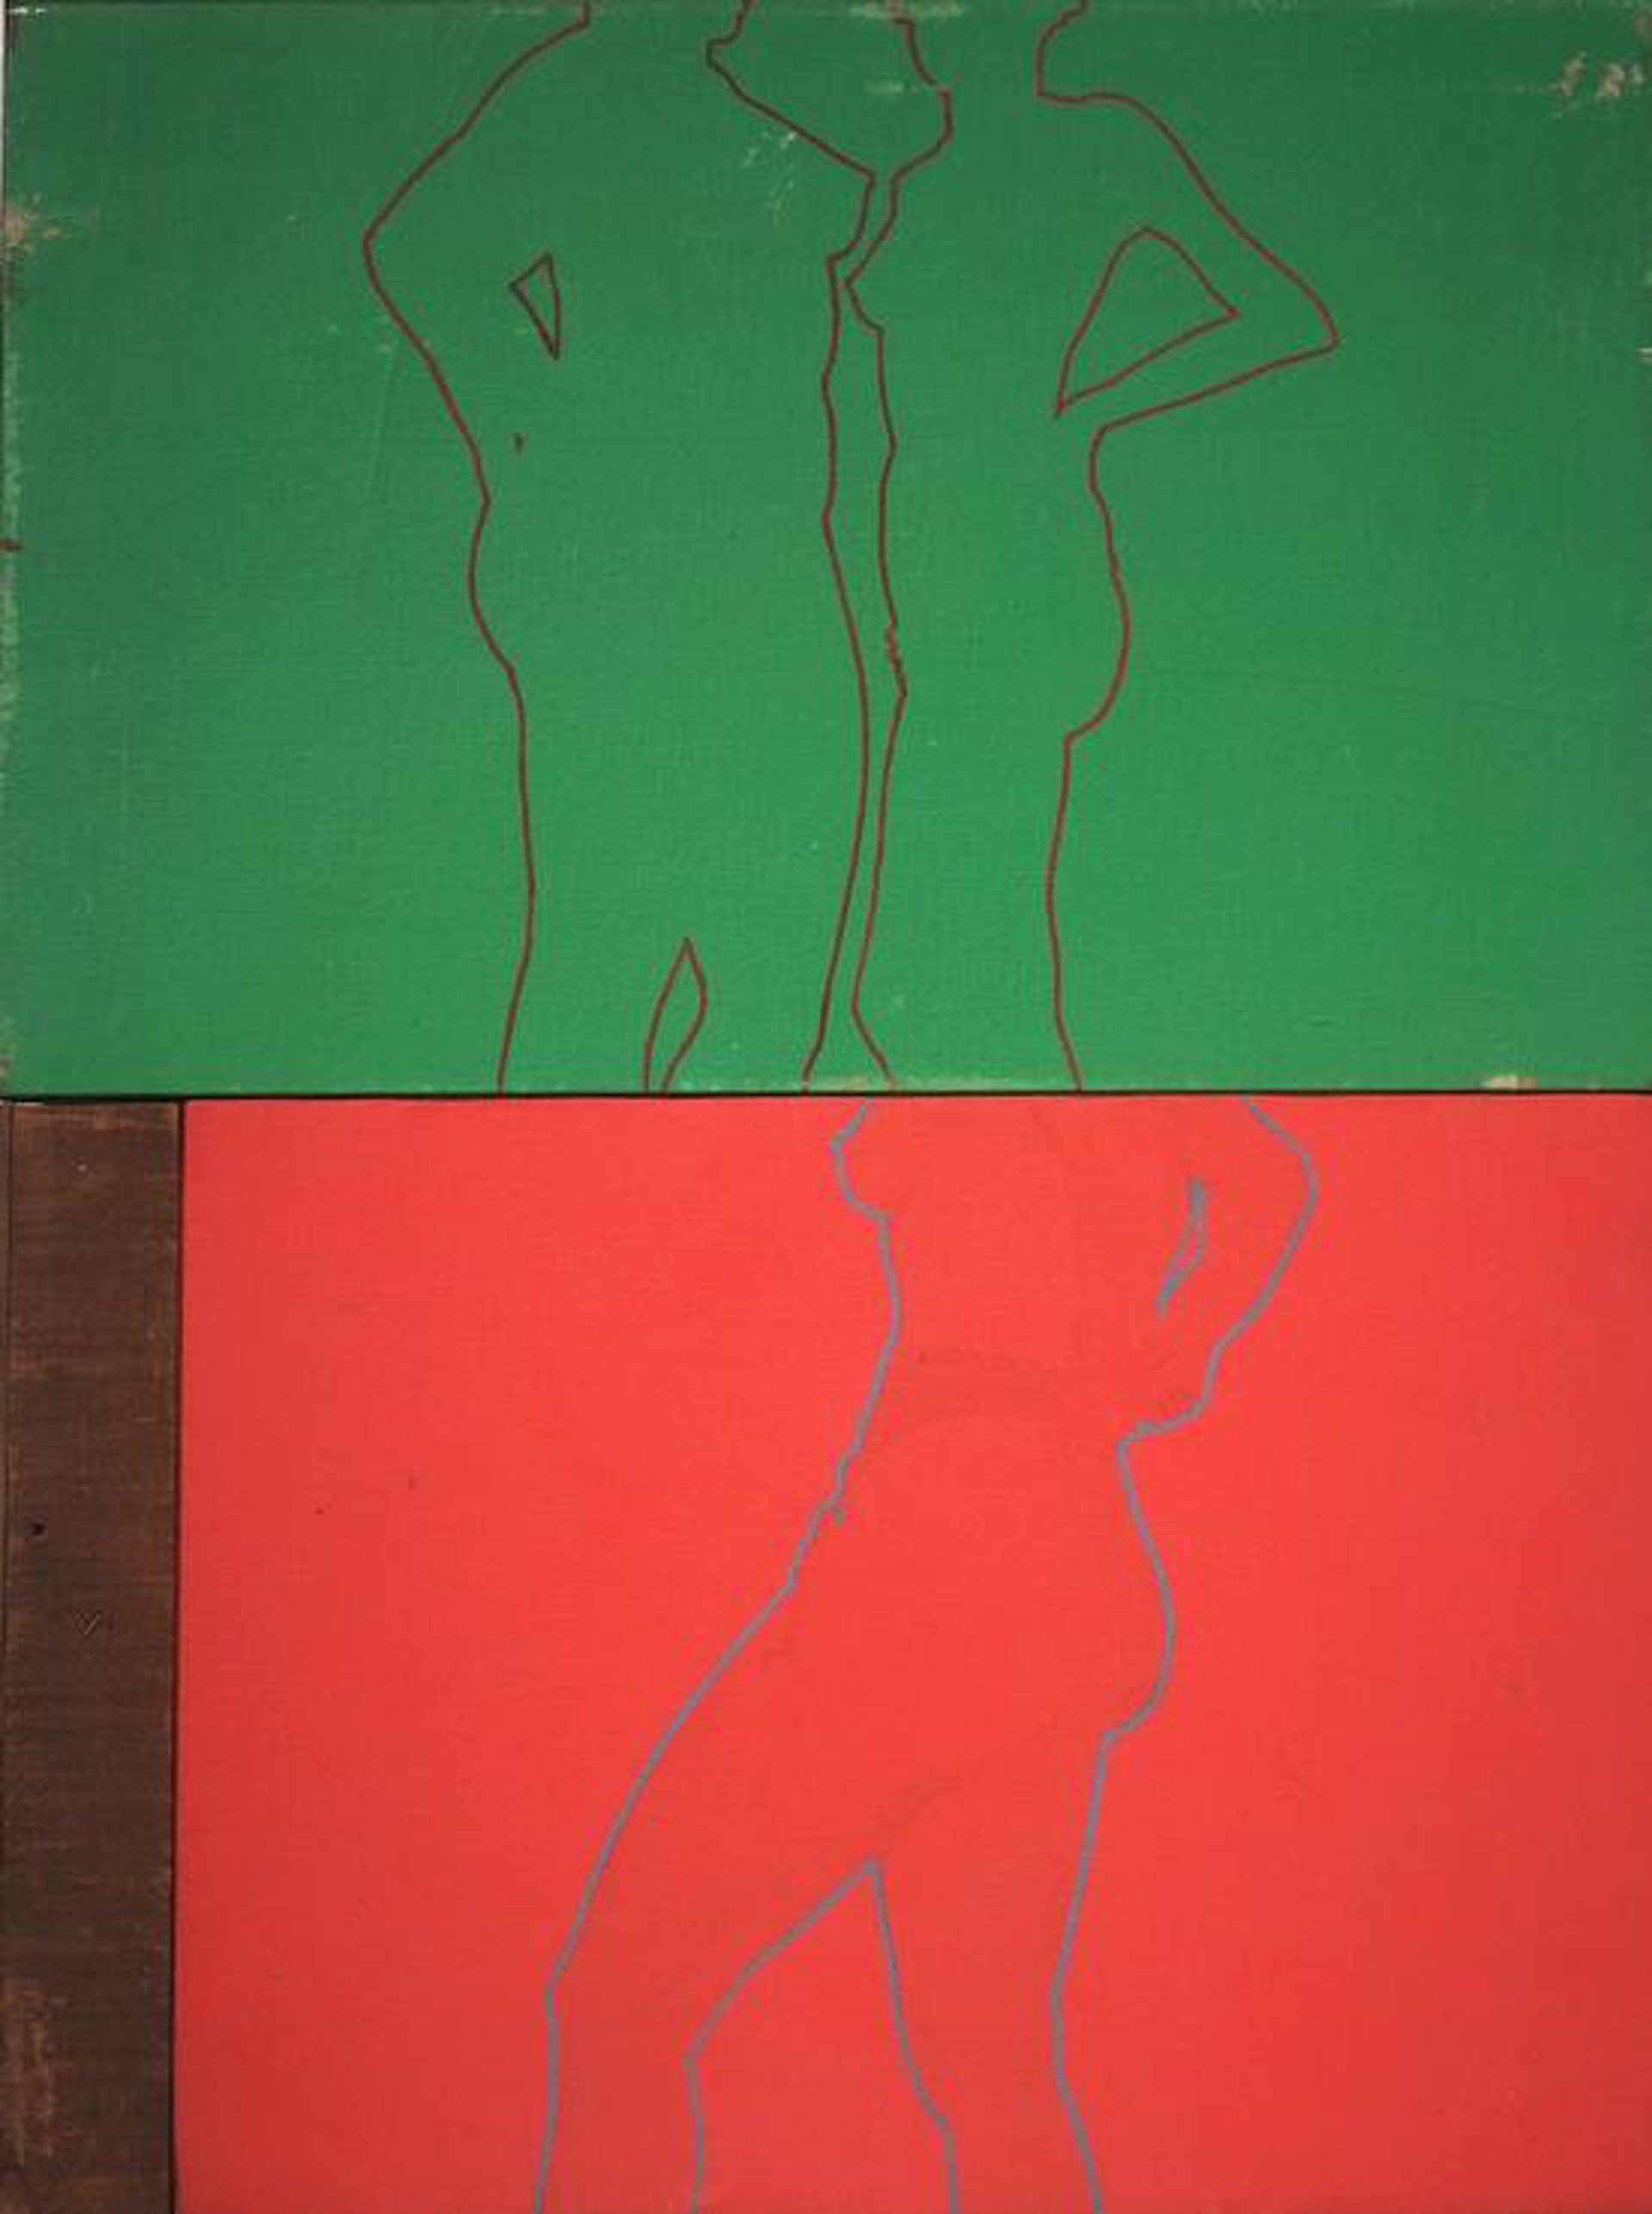 Untitled (Diptych) by David Chapin